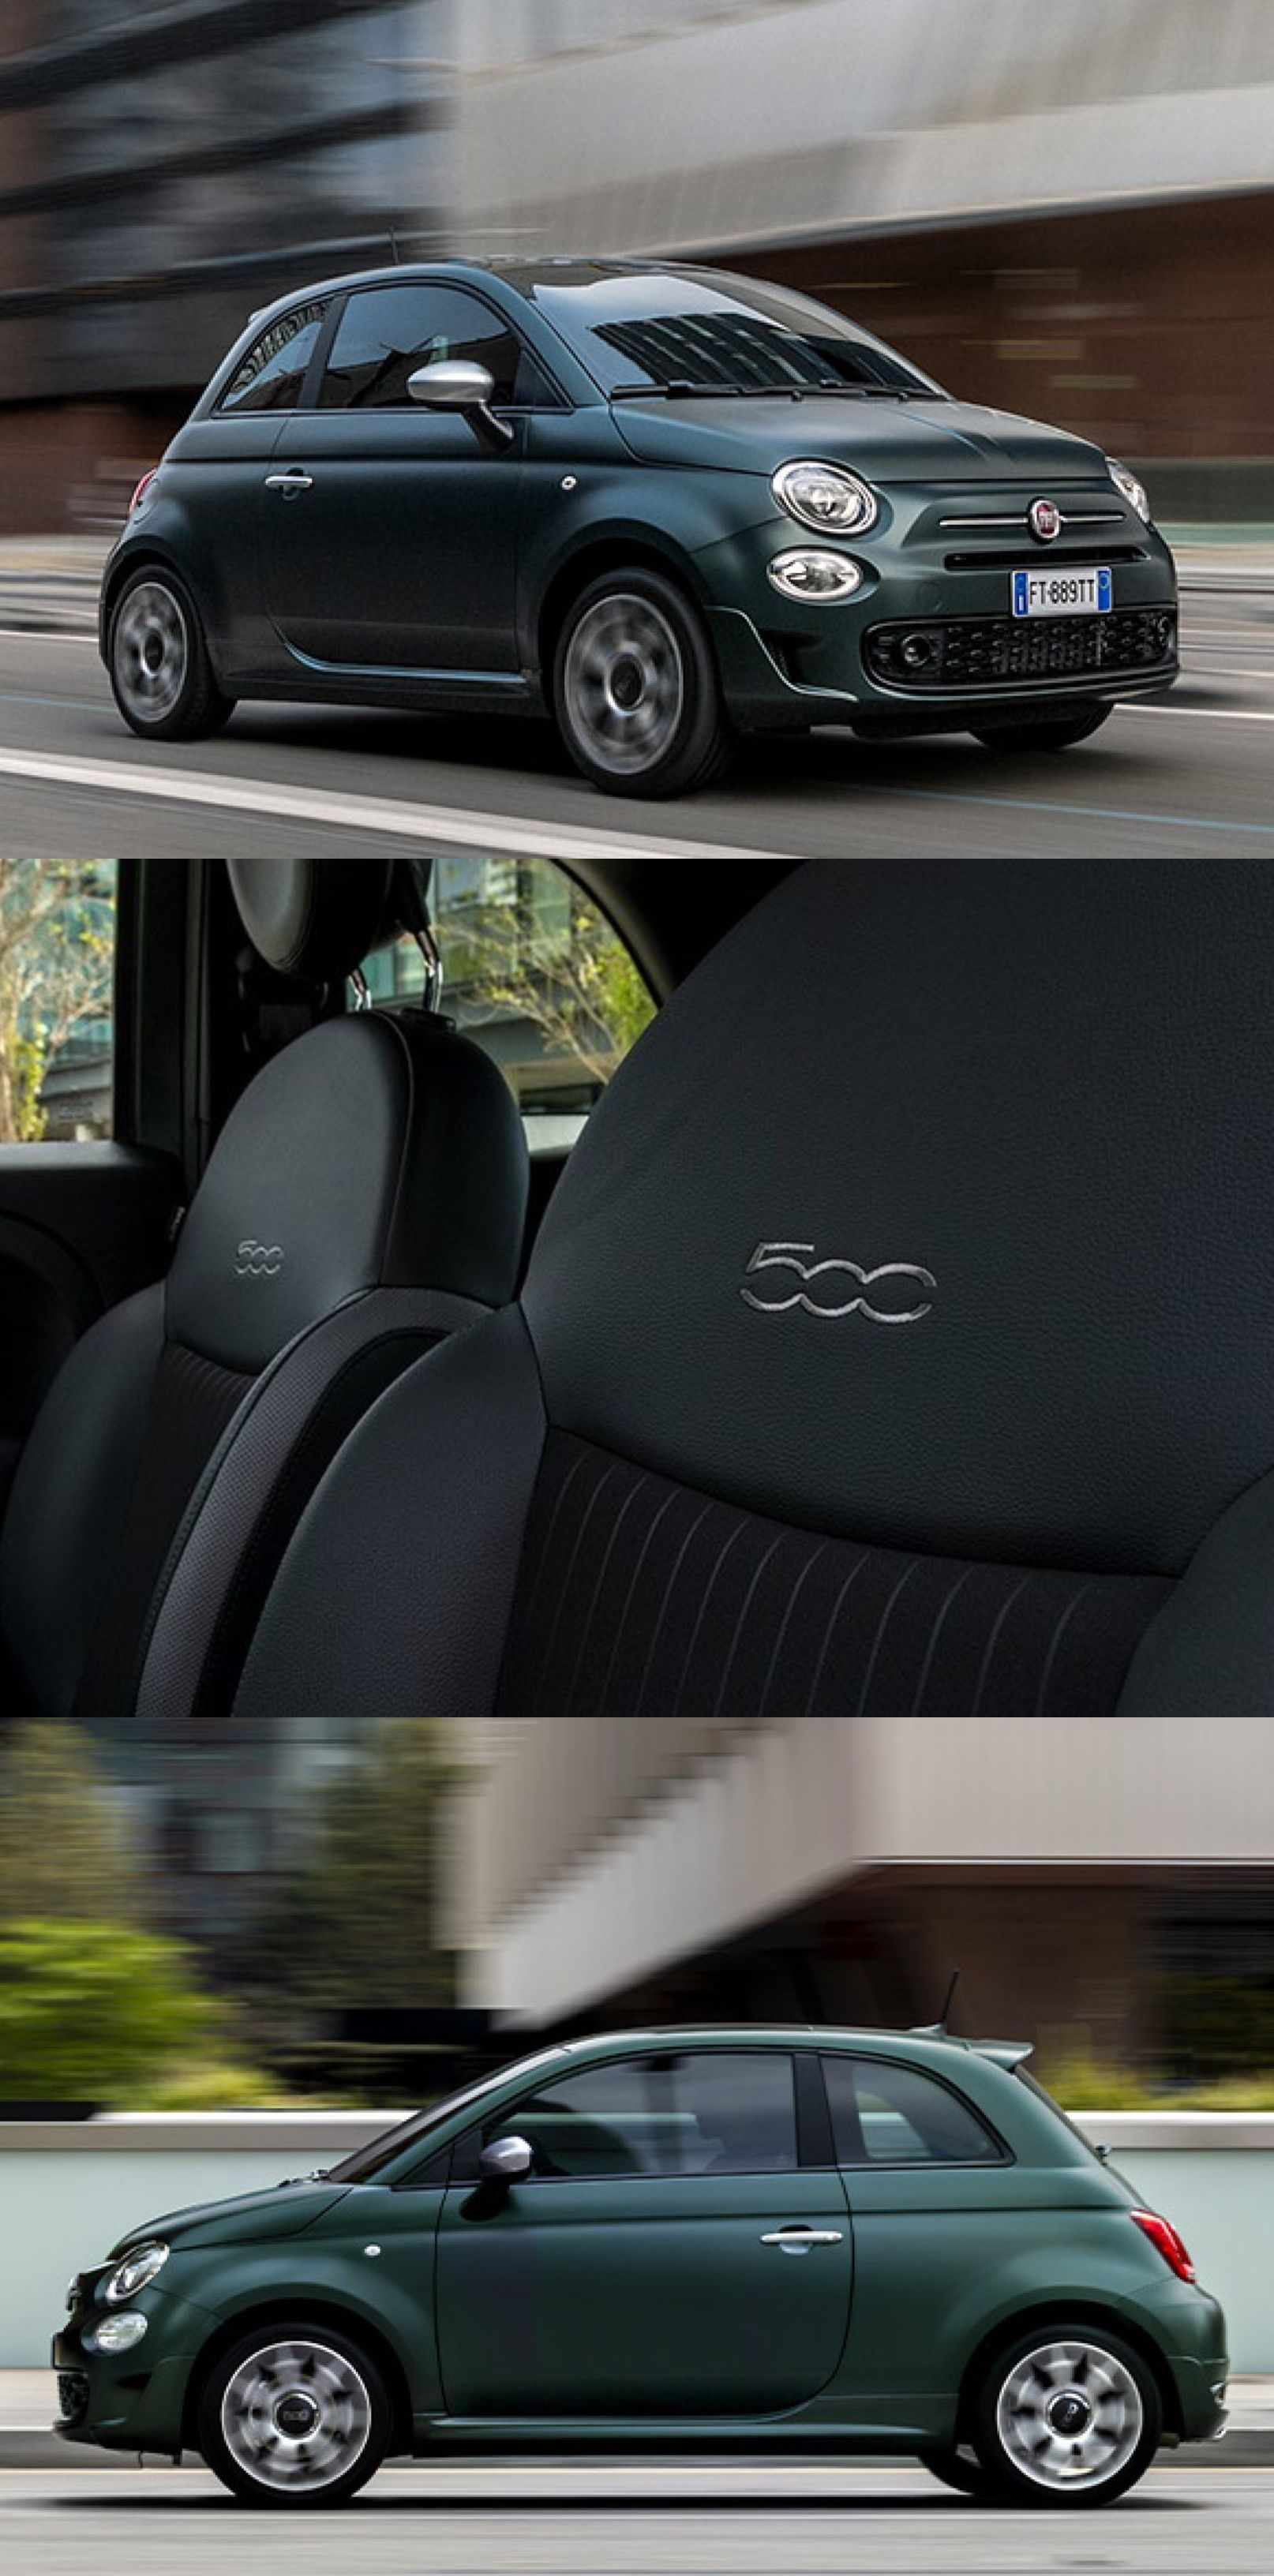 Check Out This Bold Portofino Green Fiat 500 This Fiat Is The New